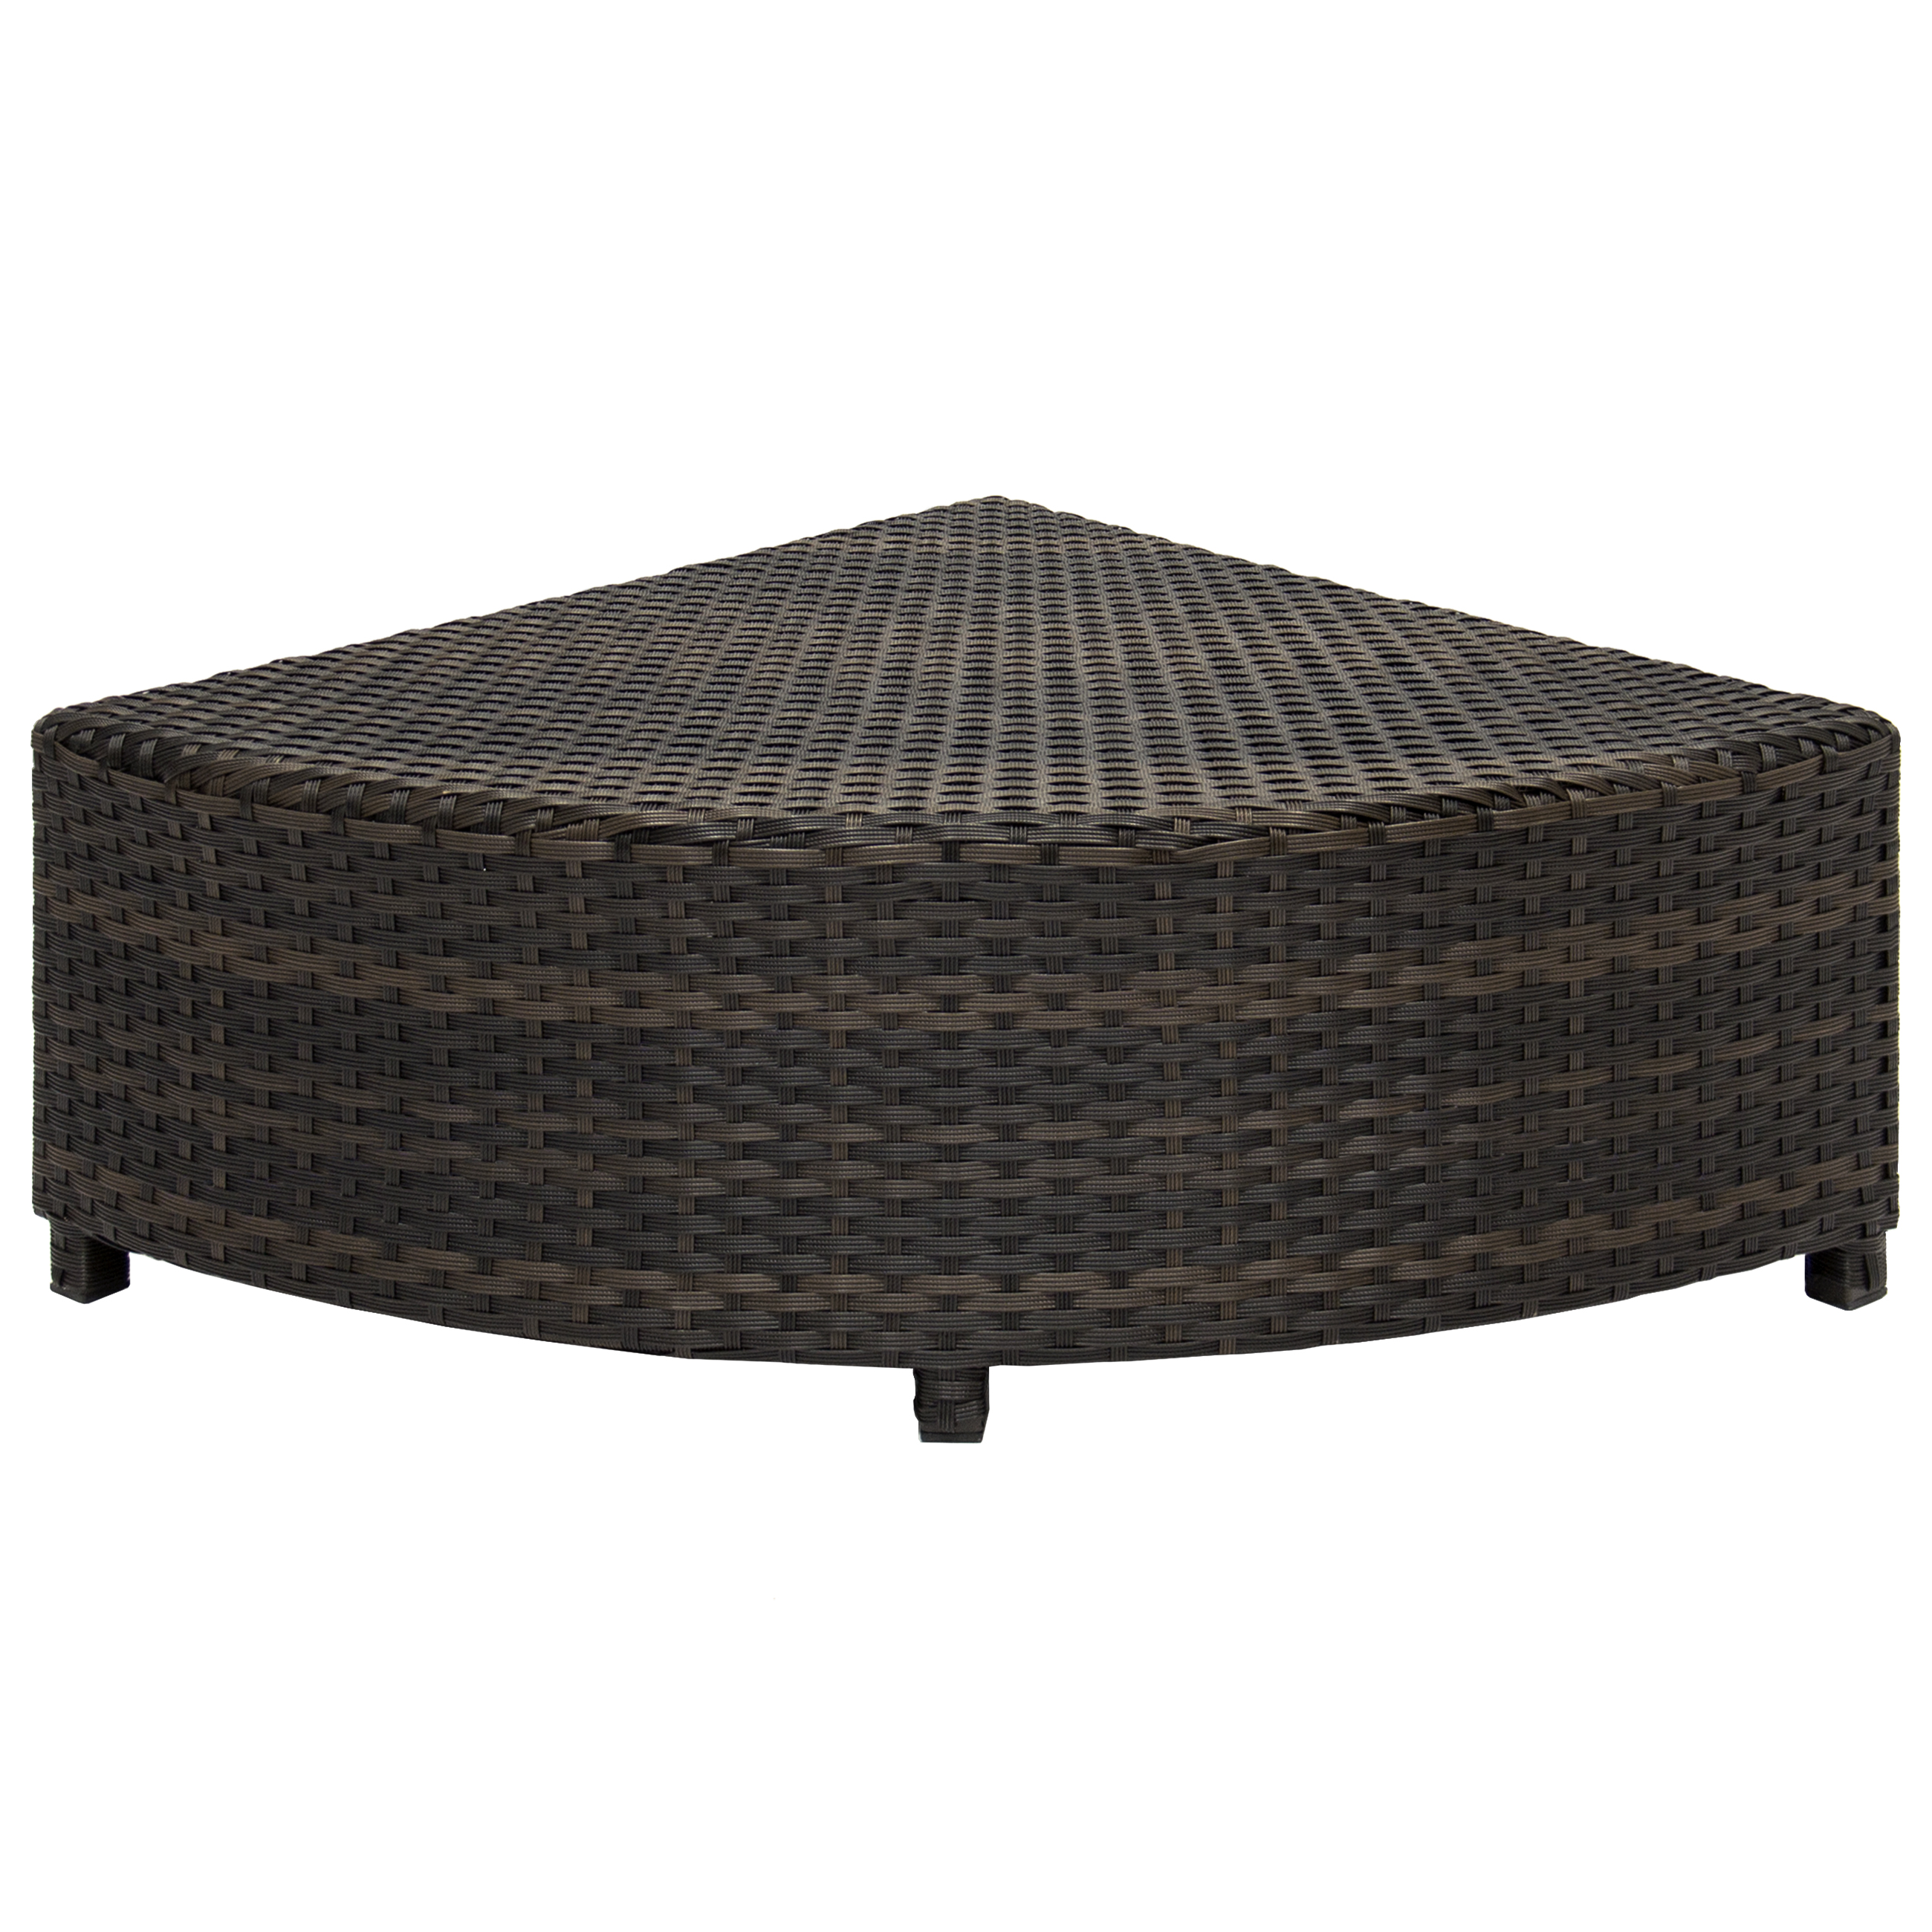 Brown Rattan Coffee Table Outdoor: Patio Furniture 6-Piece Wicker Sectional Sofa Set W